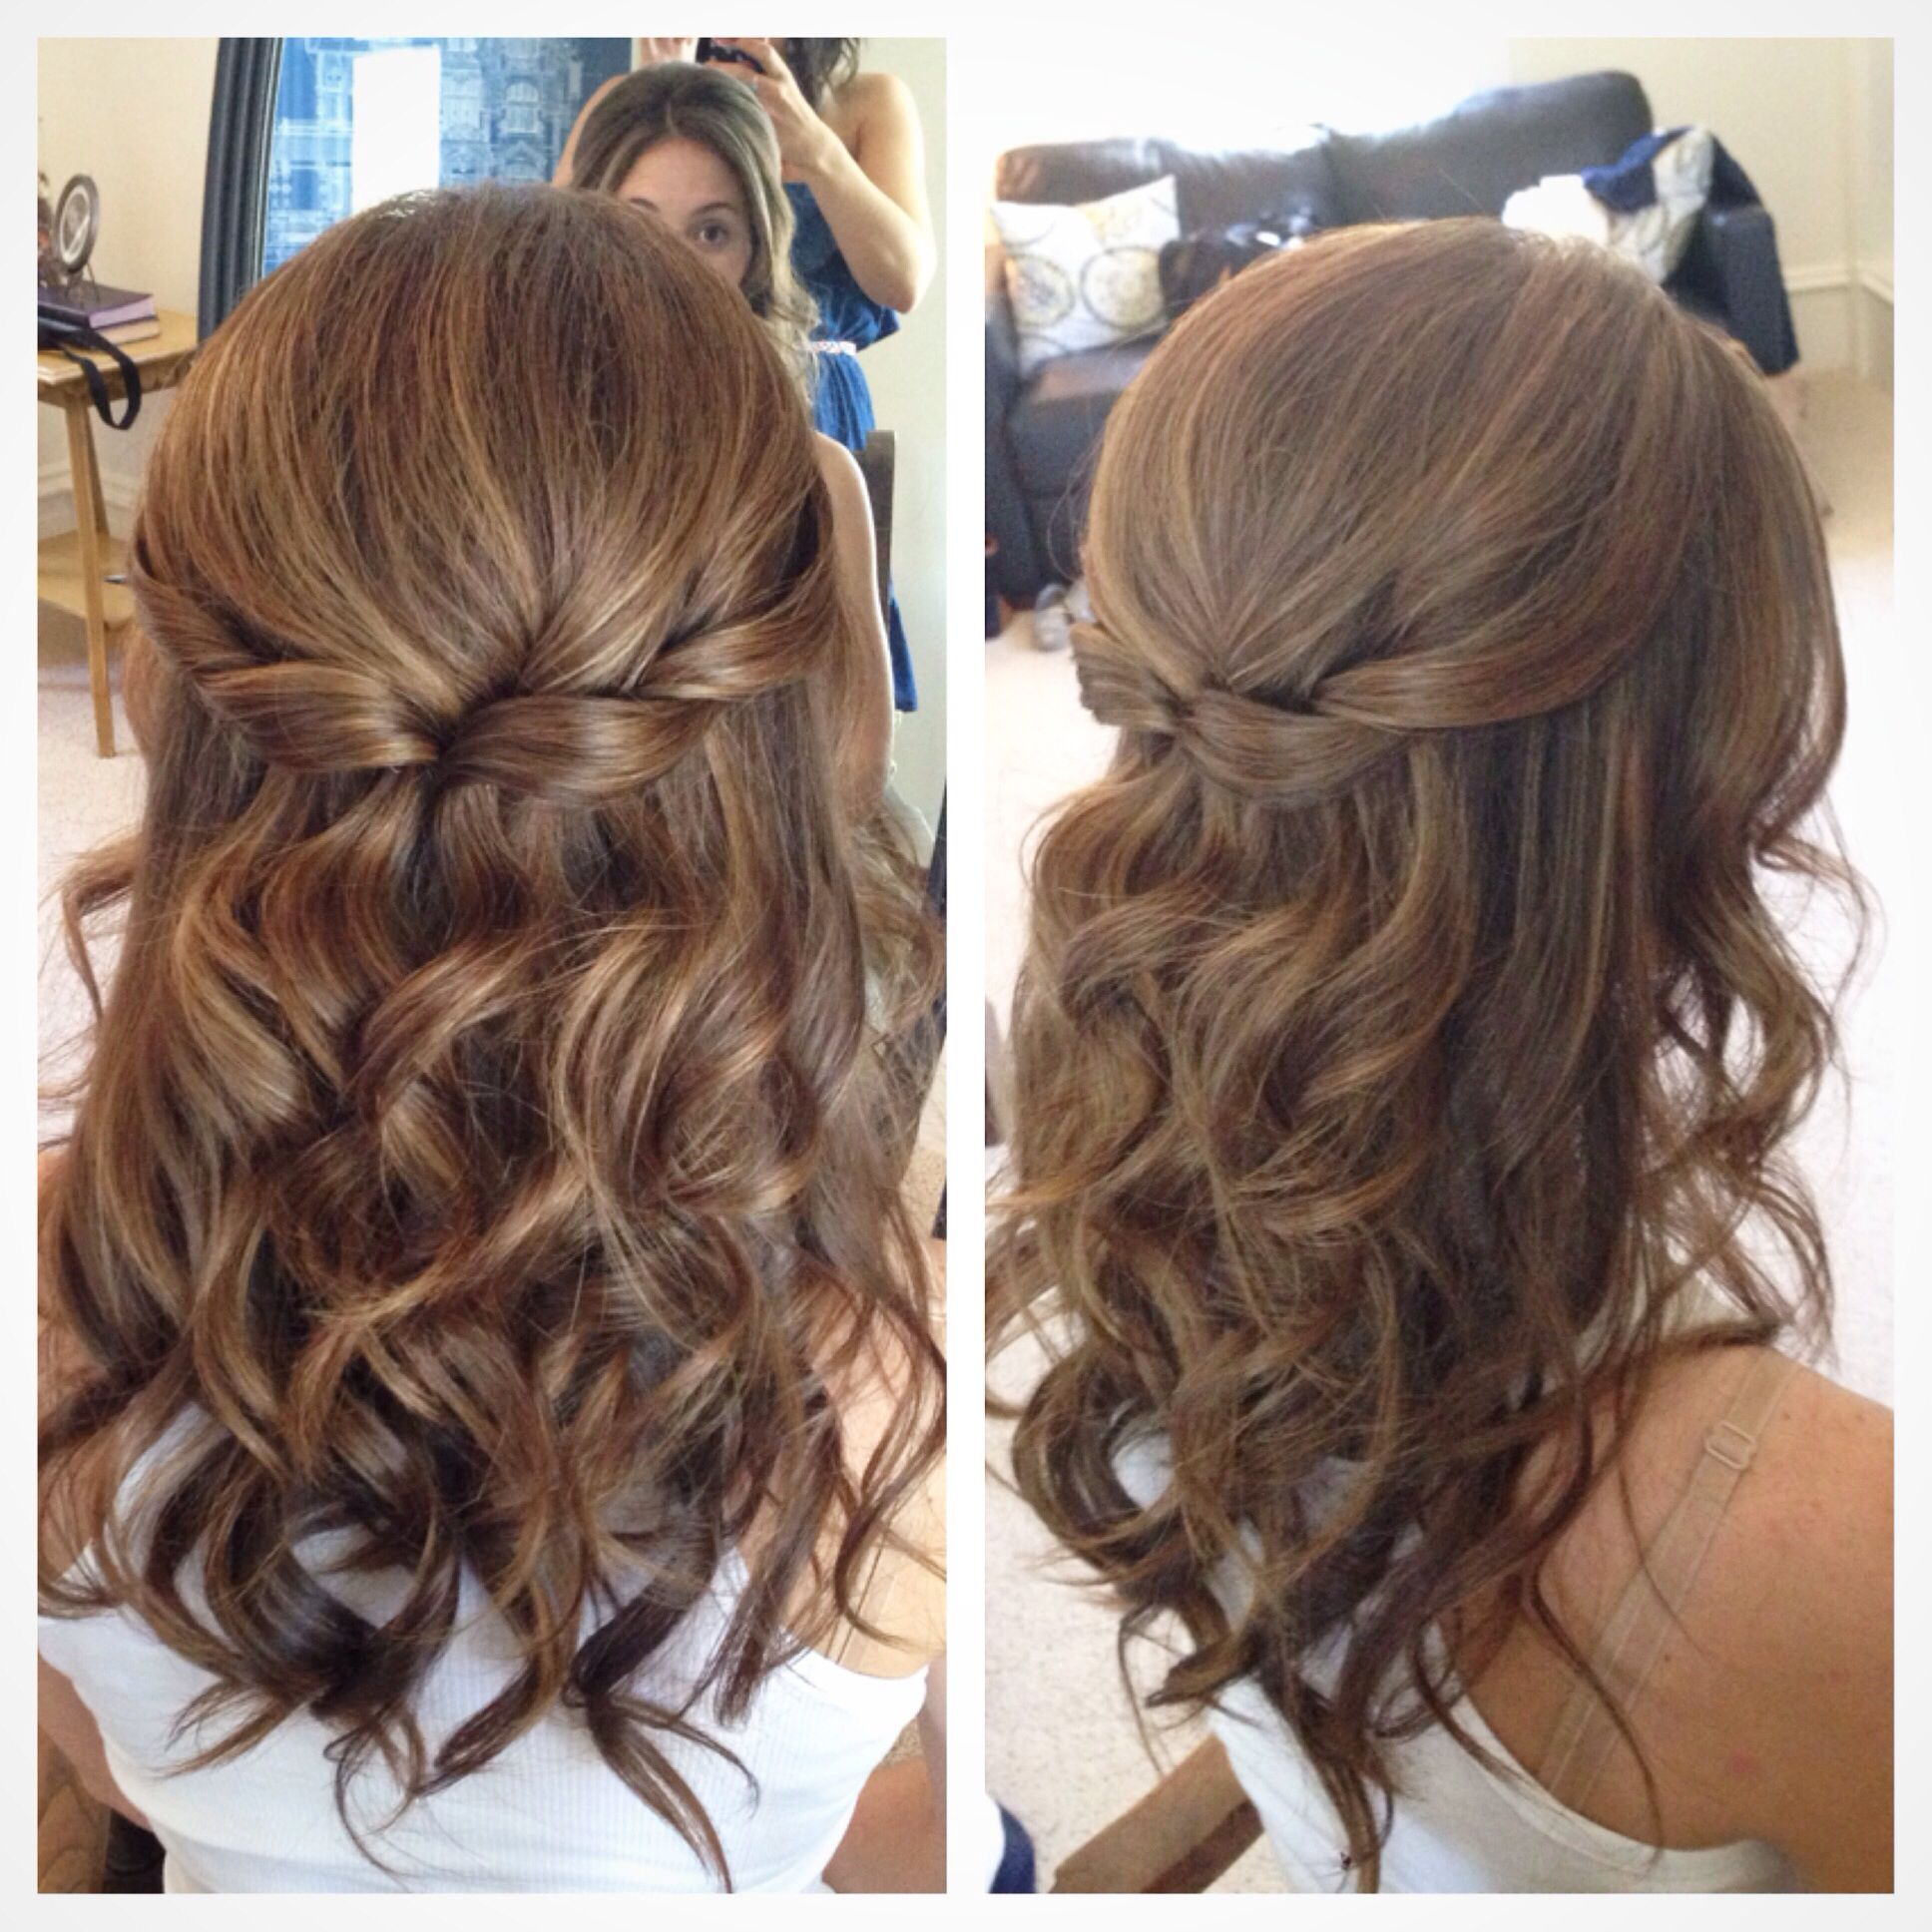 Hairstyles prom for long hair down curly foto